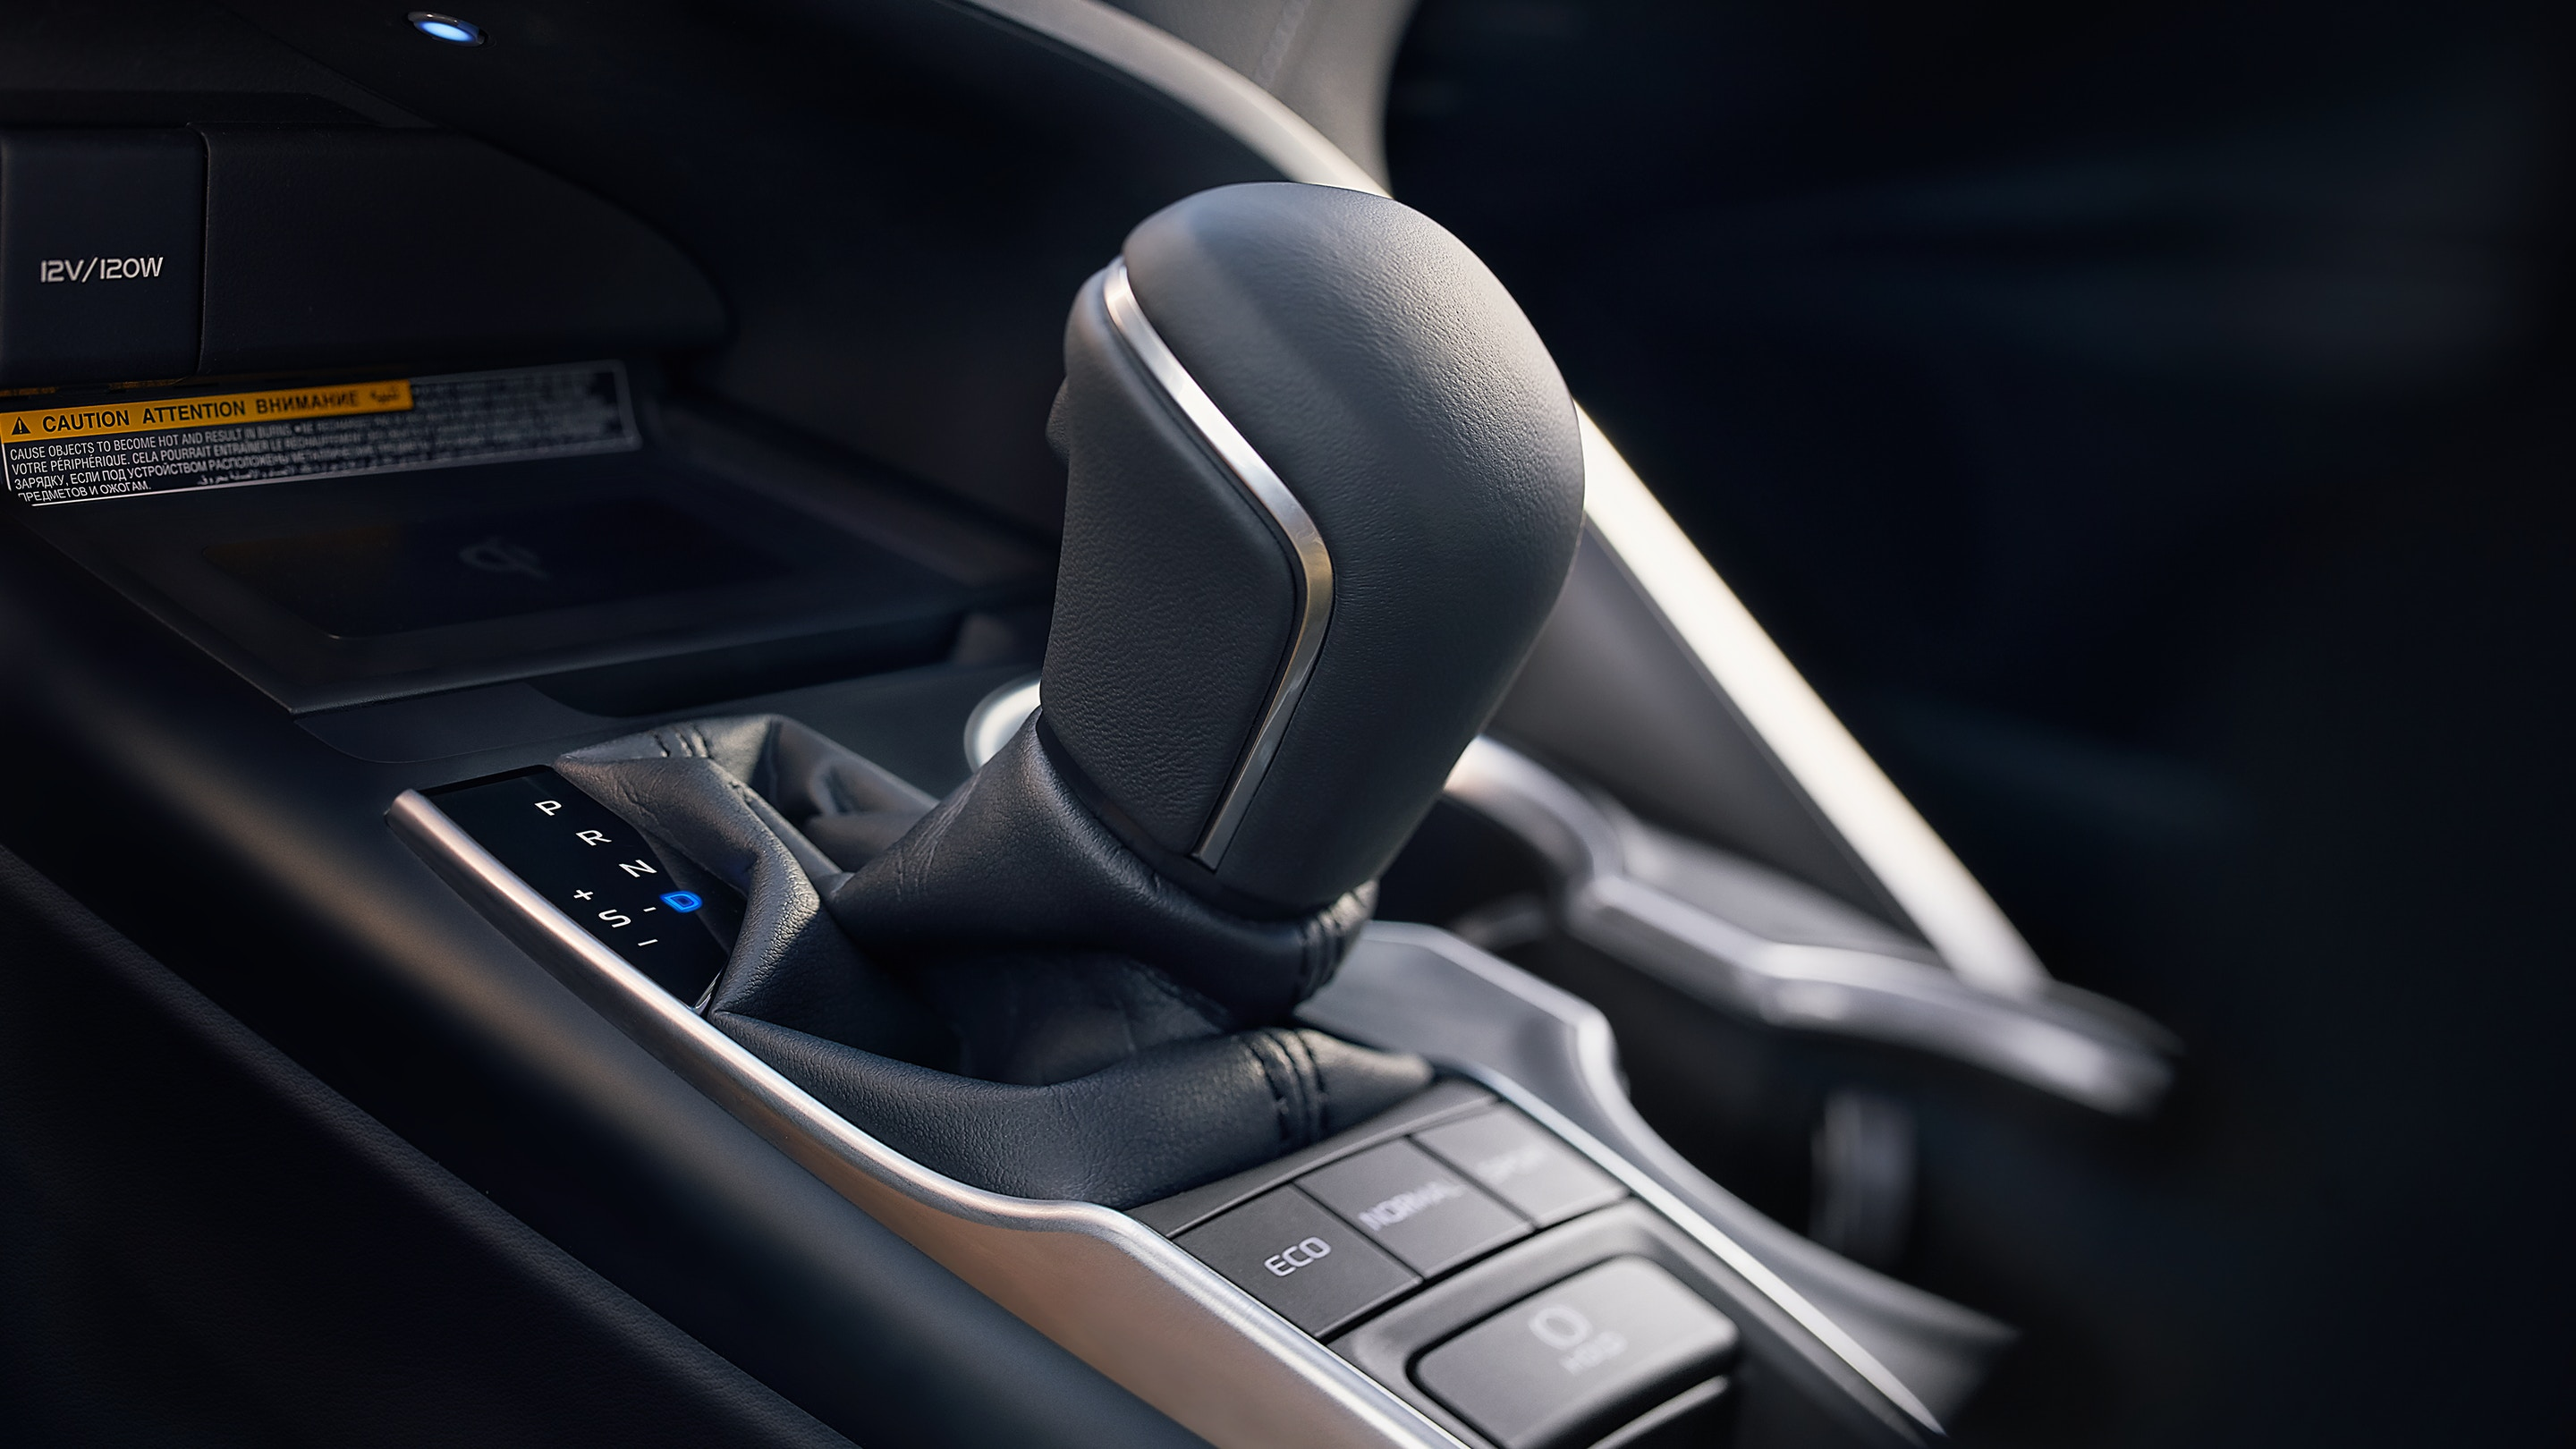 2020 Toyota Camry Gear Shifter